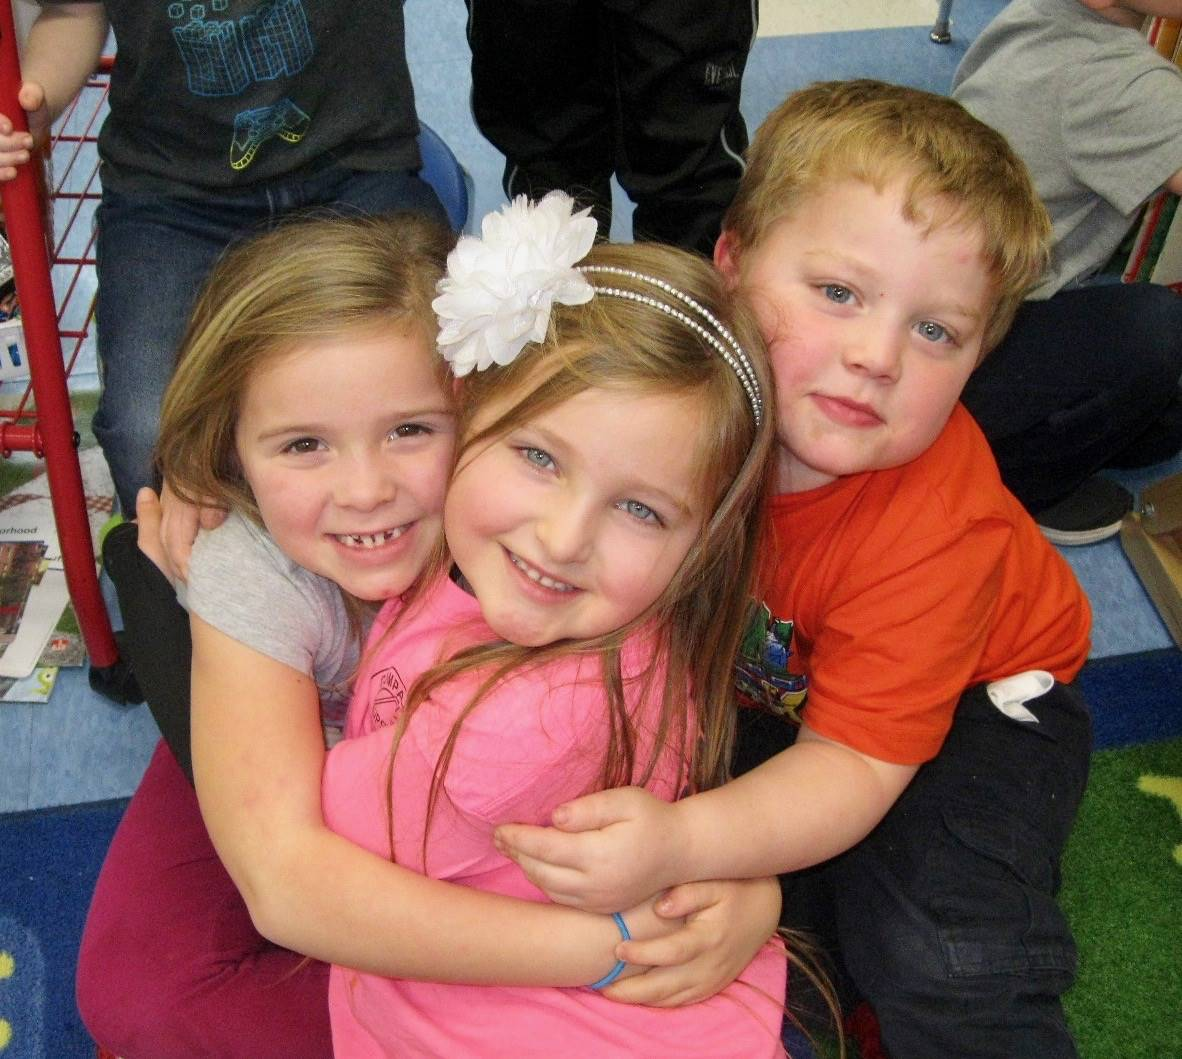 3 students show kindness to each other.